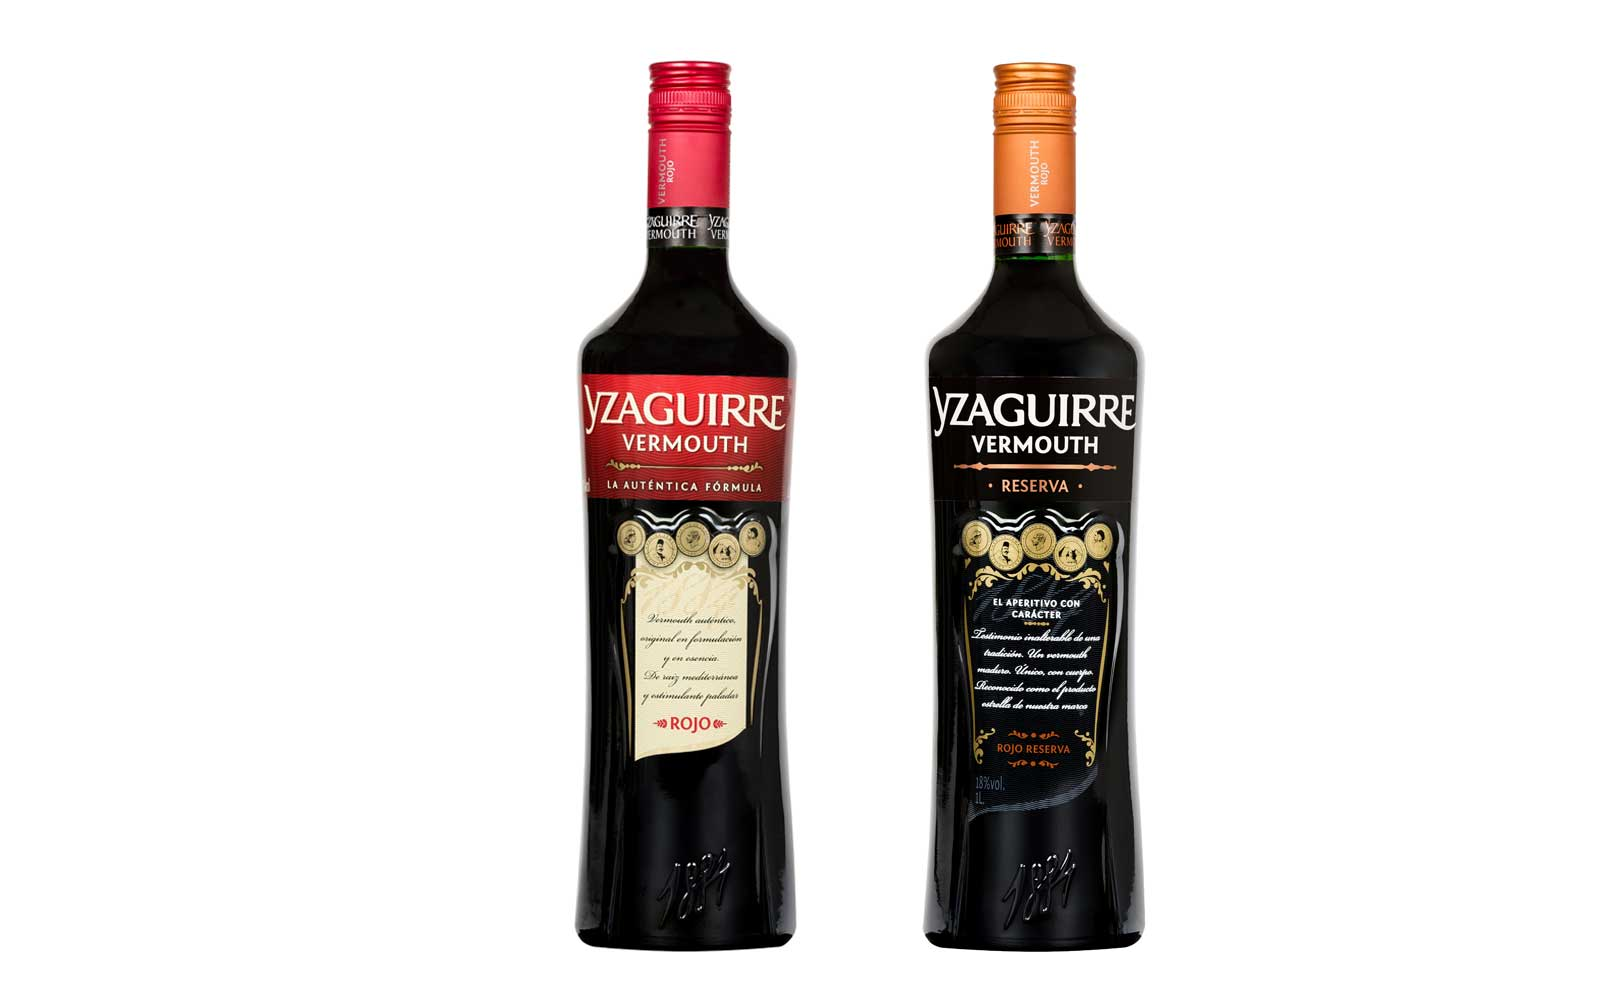 Yzaguirre Vermouth - Spain